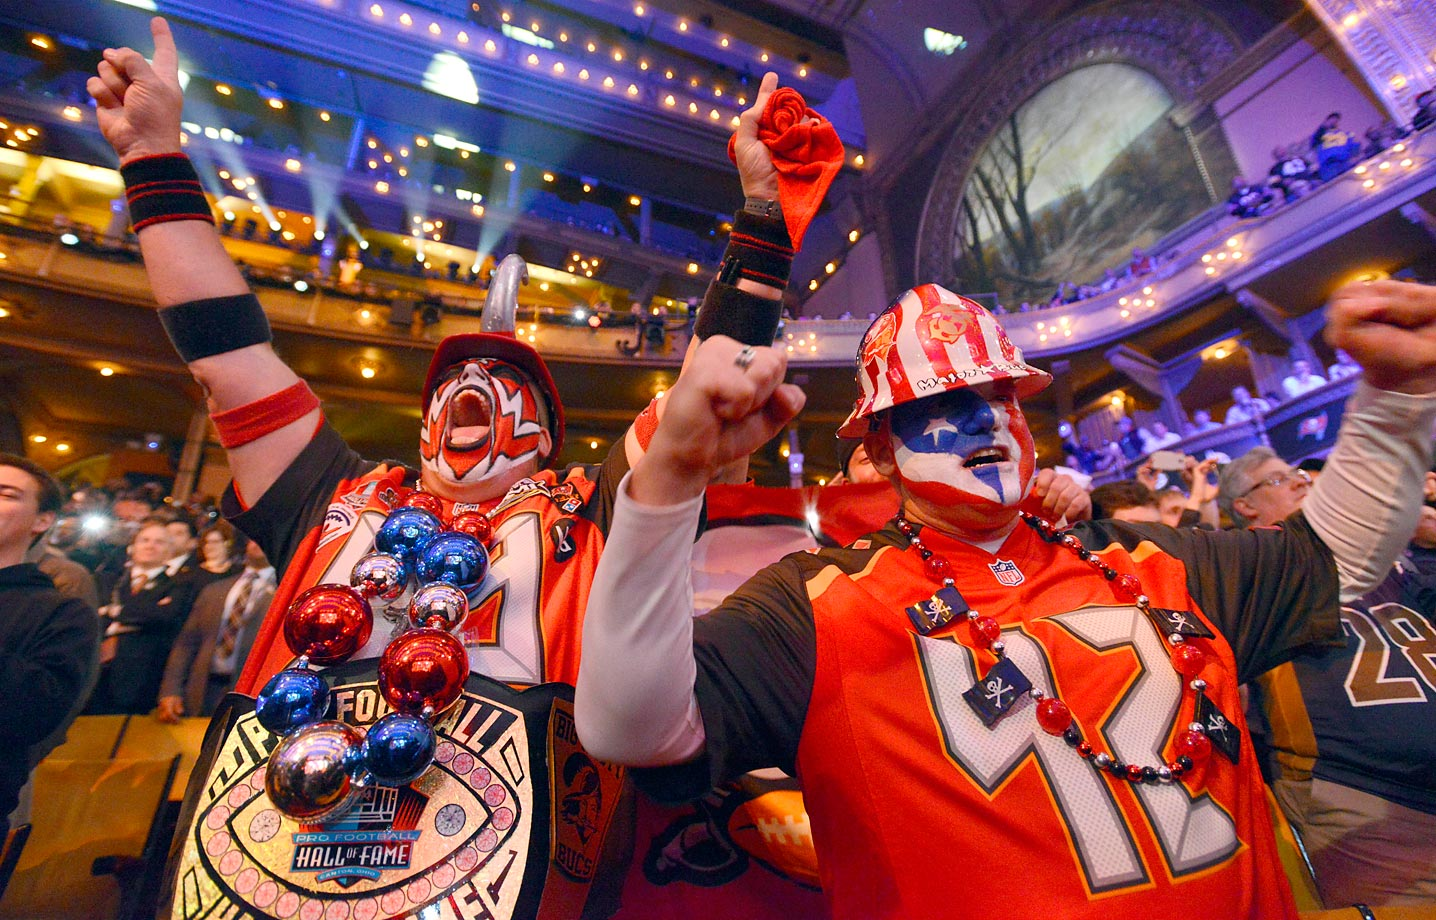 Buccaneers fans cheer after the team selected Florida State quarterback Jameis Winston as the first pick in the first round of the draft.